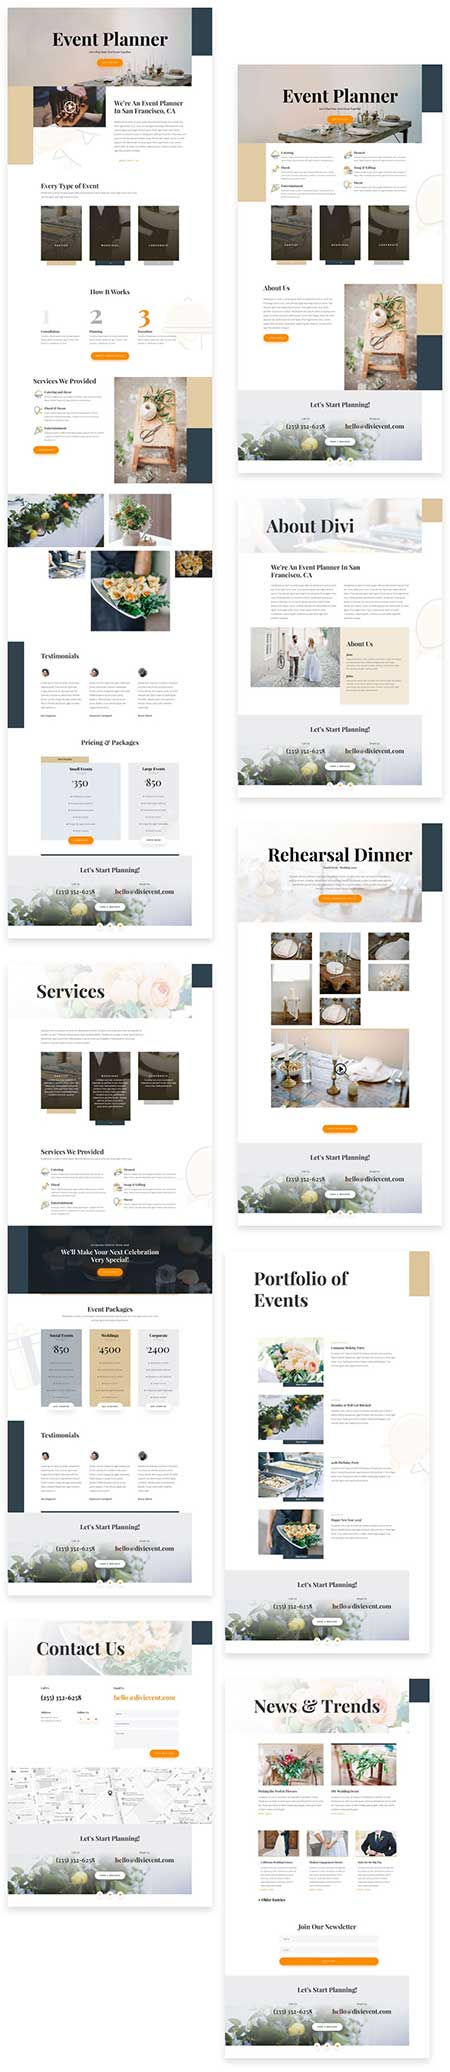 Divi event planner template